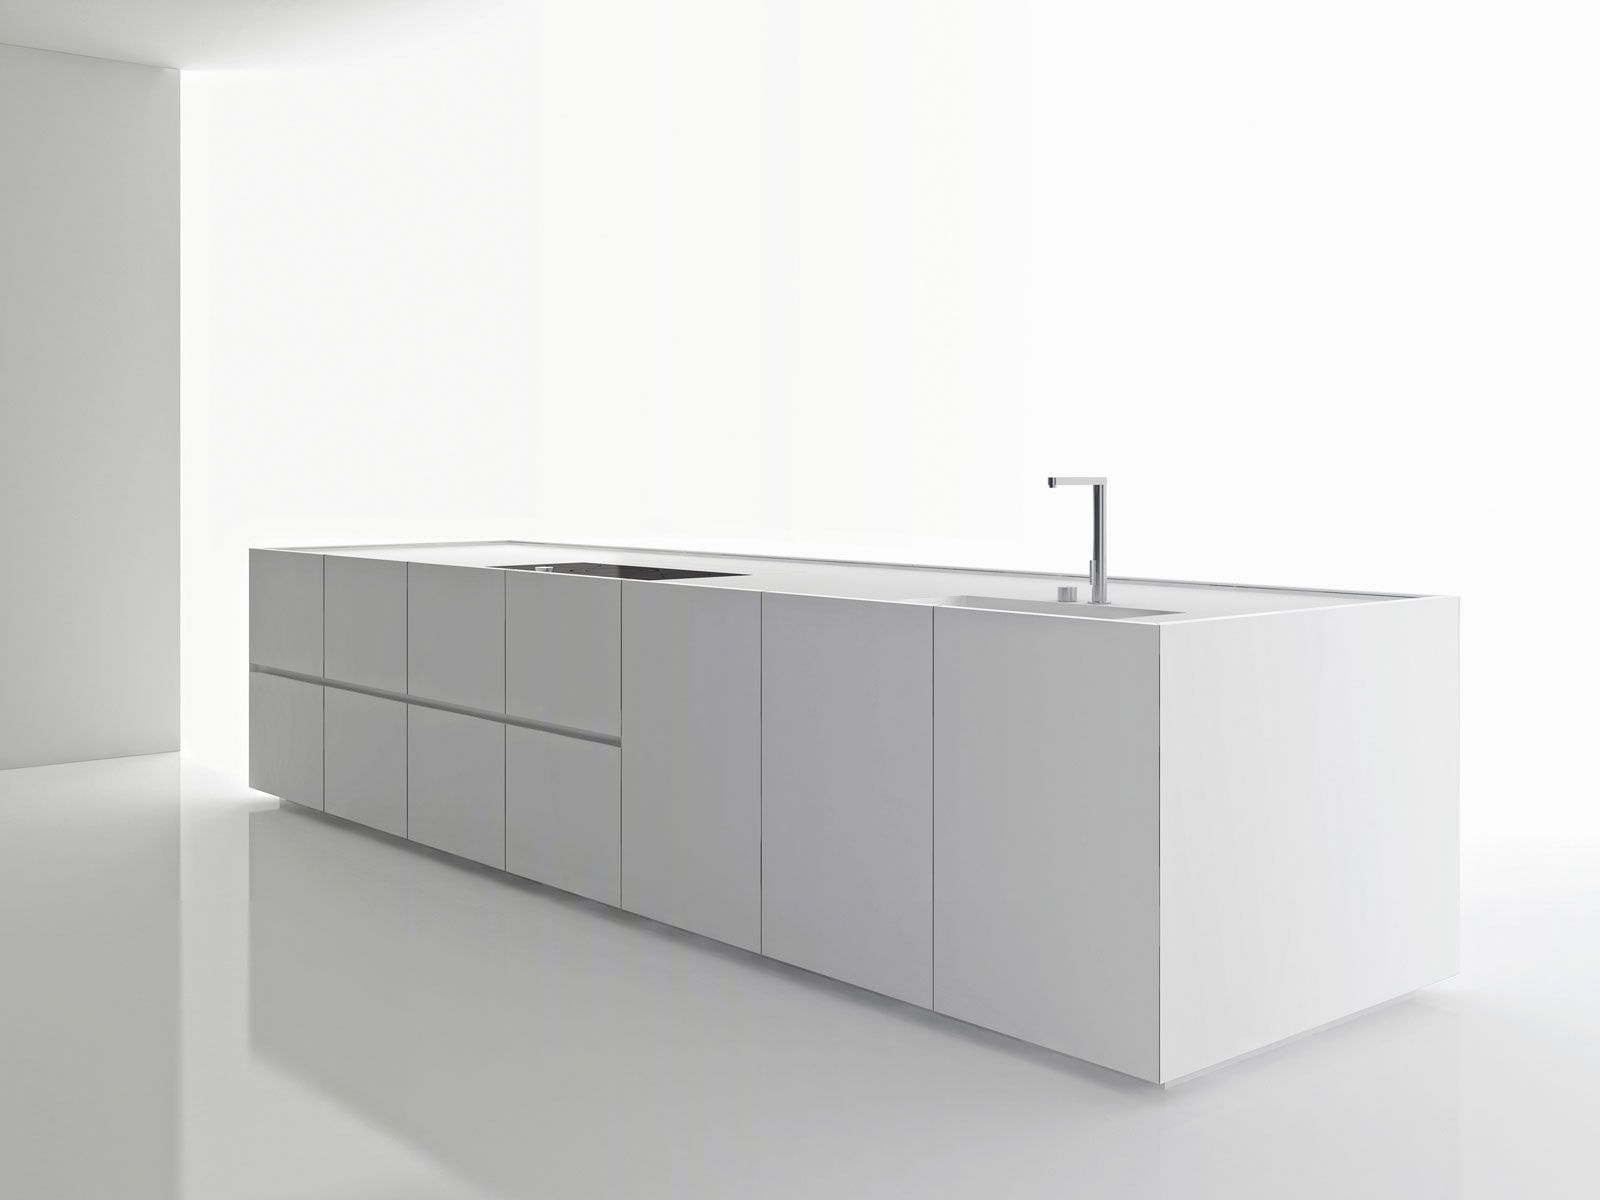 Piano In Corian Cucina.Solid Surface Materiale High Tech Per La Cucina Interior